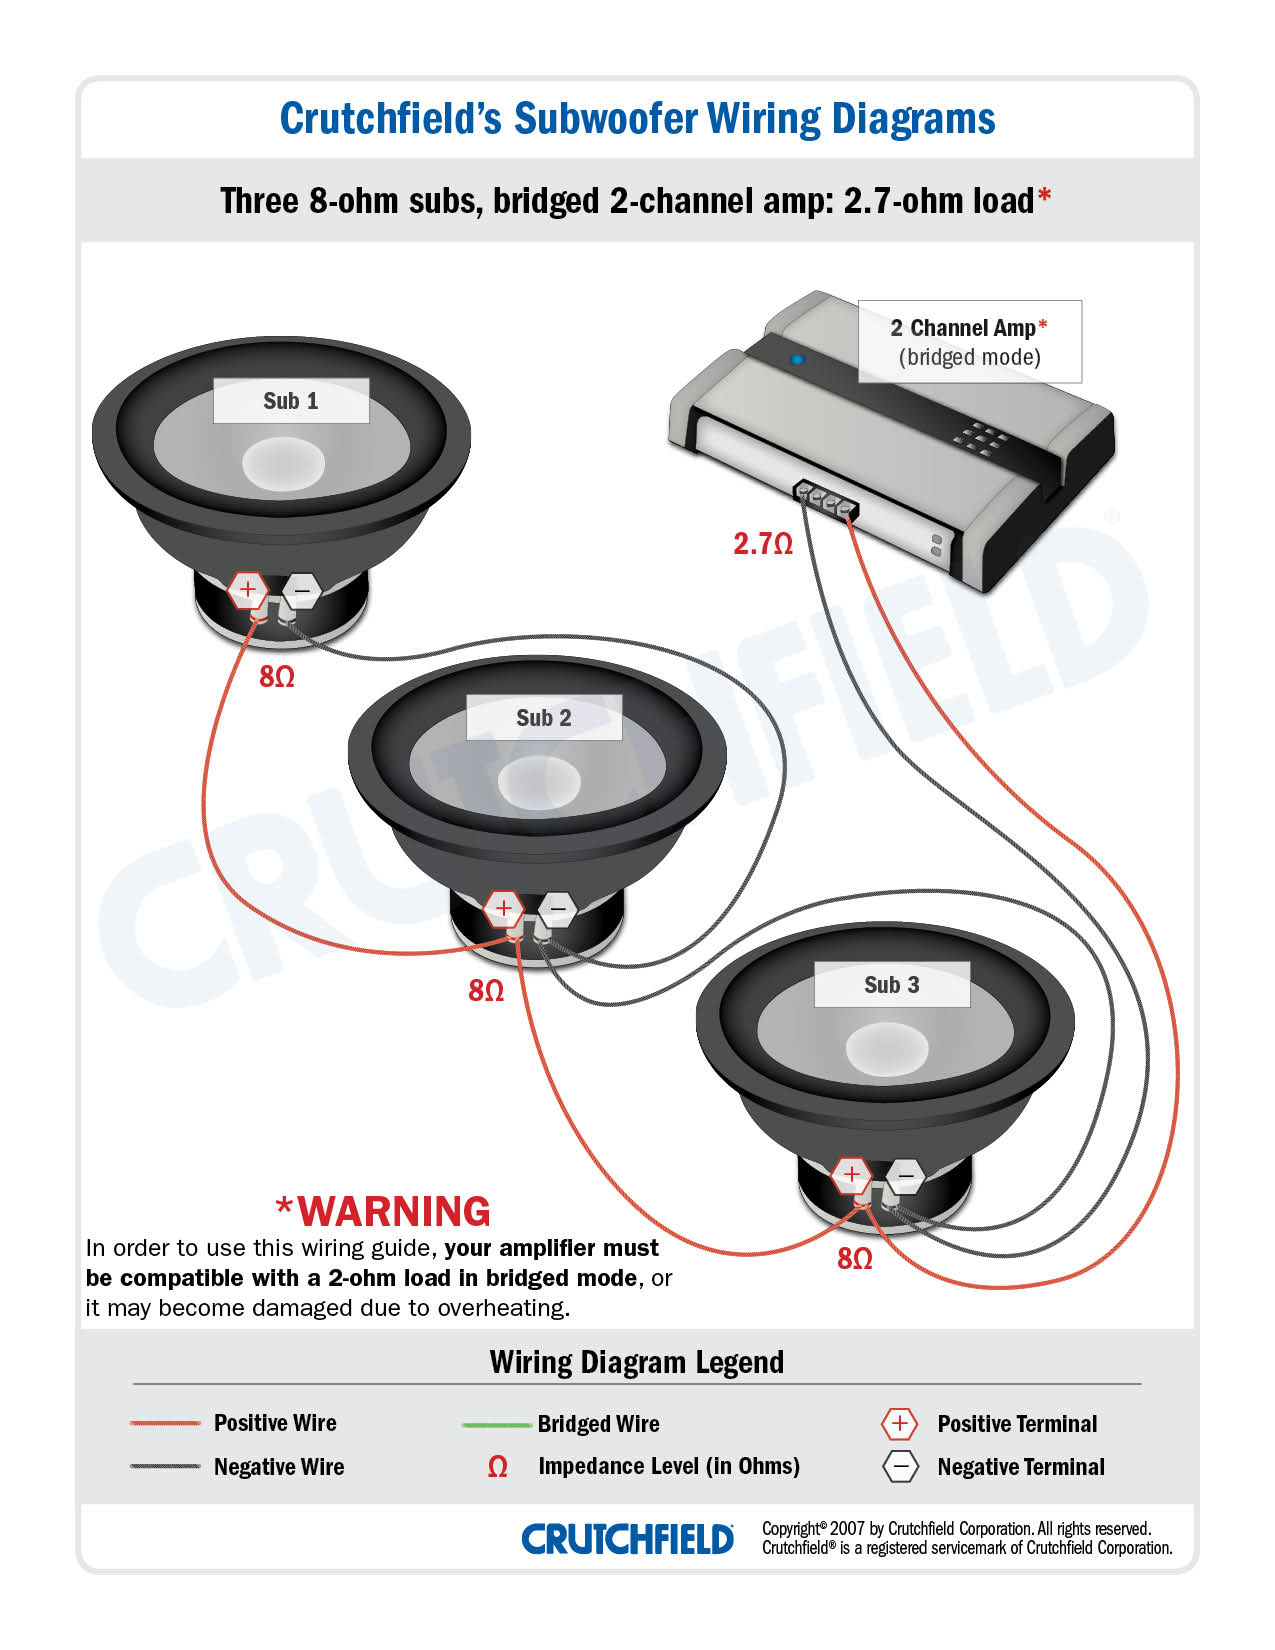 3 SVC 8 ohm 2 ch low imp subwoofer wiring diagrams crutchfield wiring diagrams at webbmarketing.co